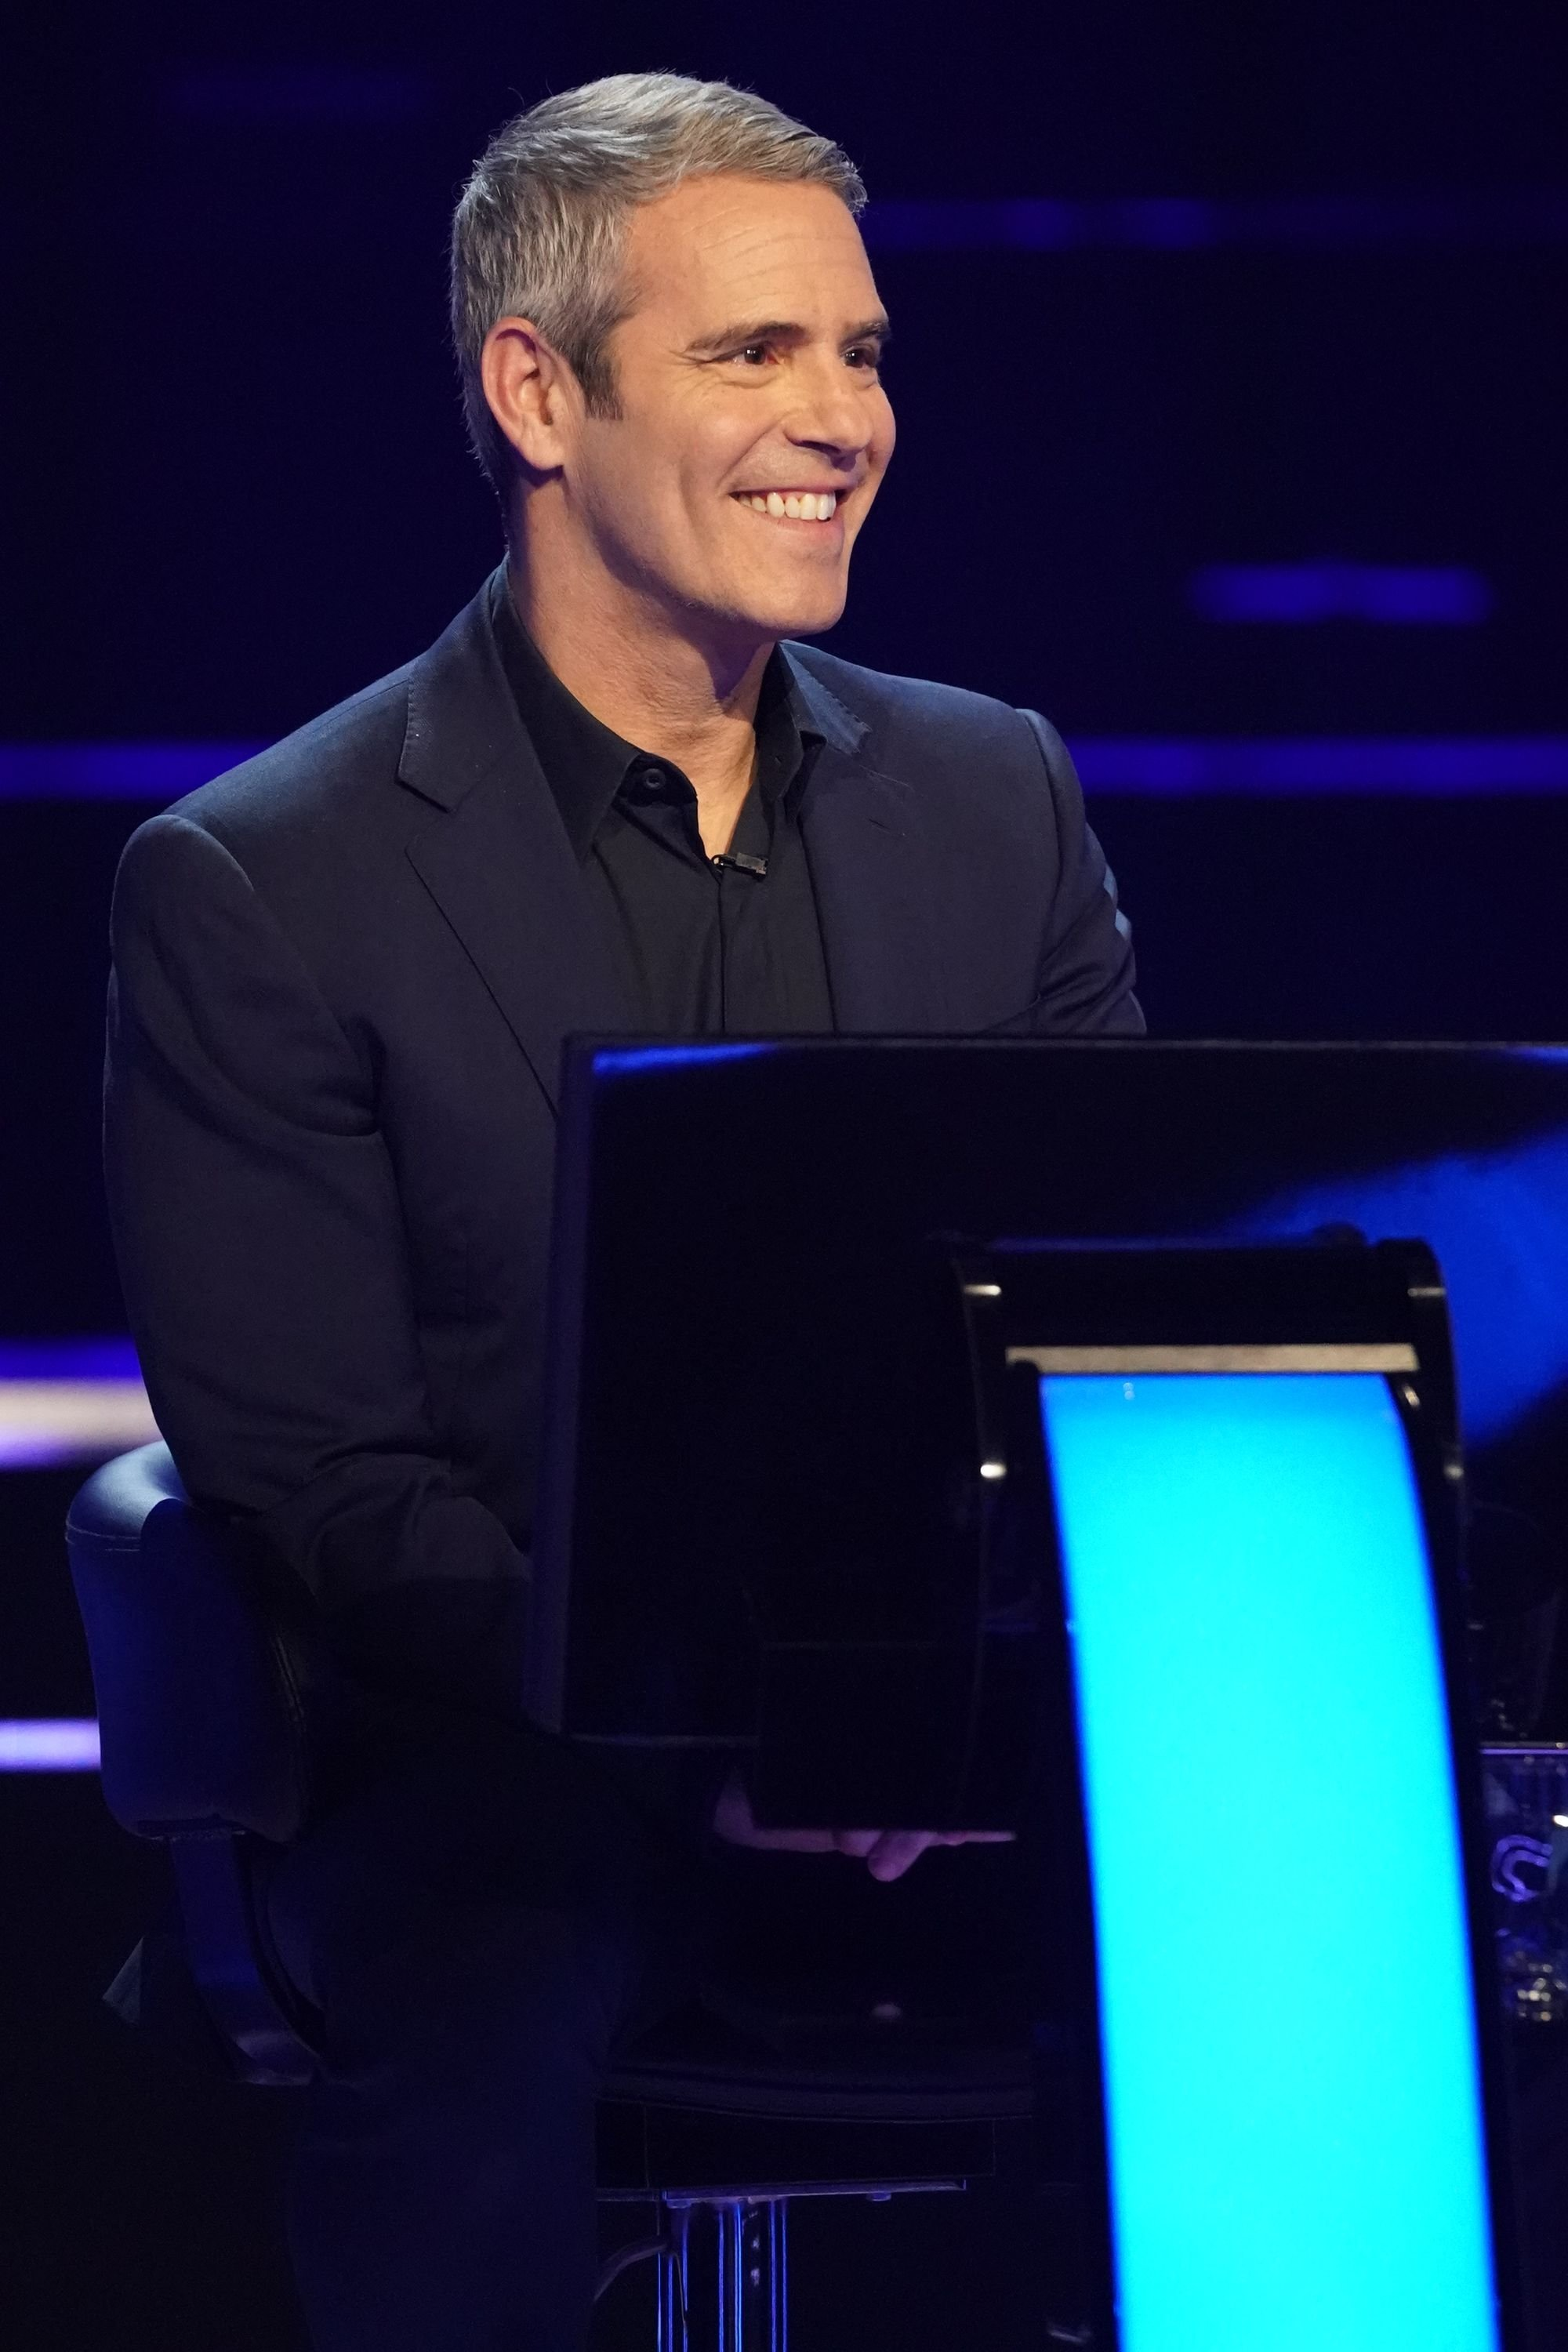 """Andy Cohenonthe season finale of """"Who Wants To Be A Millionaire,"""" on March 14, 2020